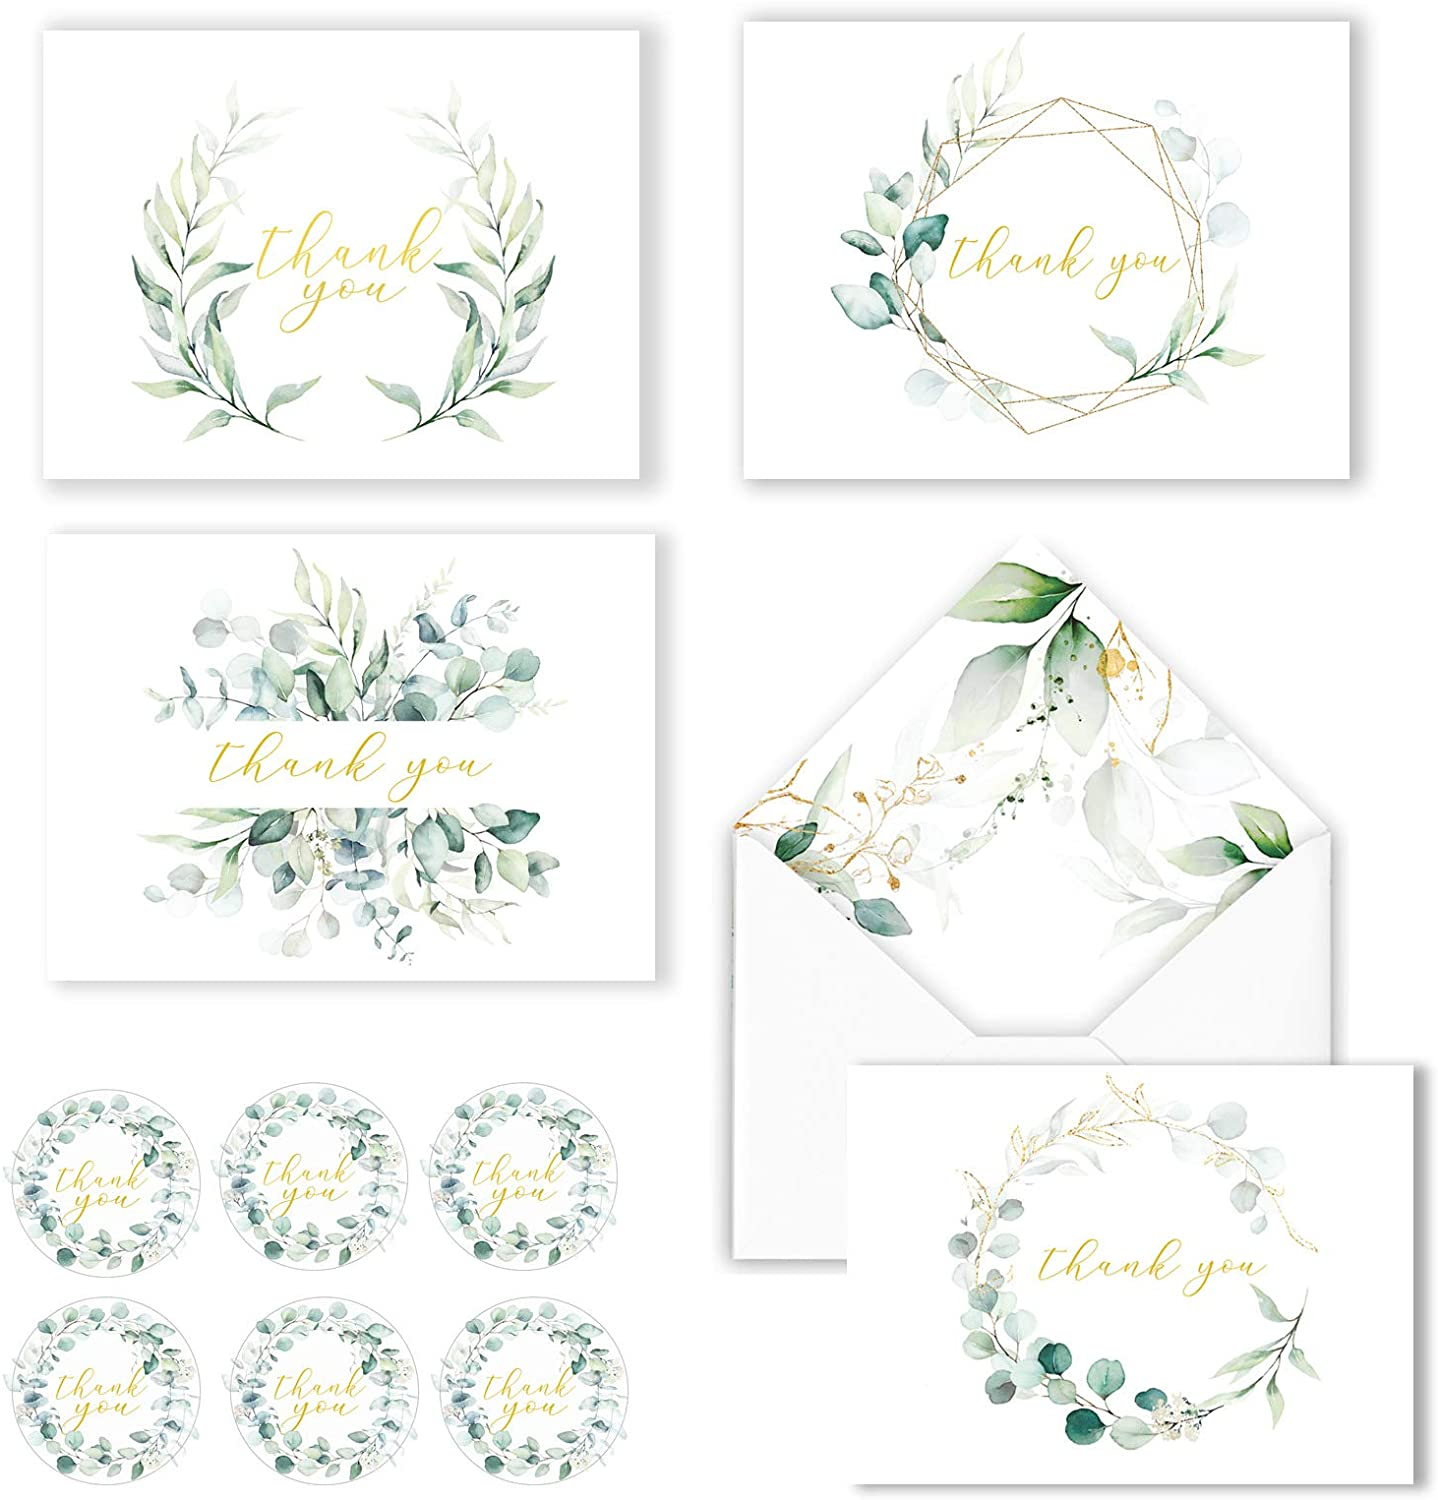 100 Eucalyptus Gold Foil Thank You Cards Bulk - Blank Note Cards with Greenery Envelopes – Include Stickers, Perfect for Wedding,Baby Shower, Bridal Shower and All Occasions